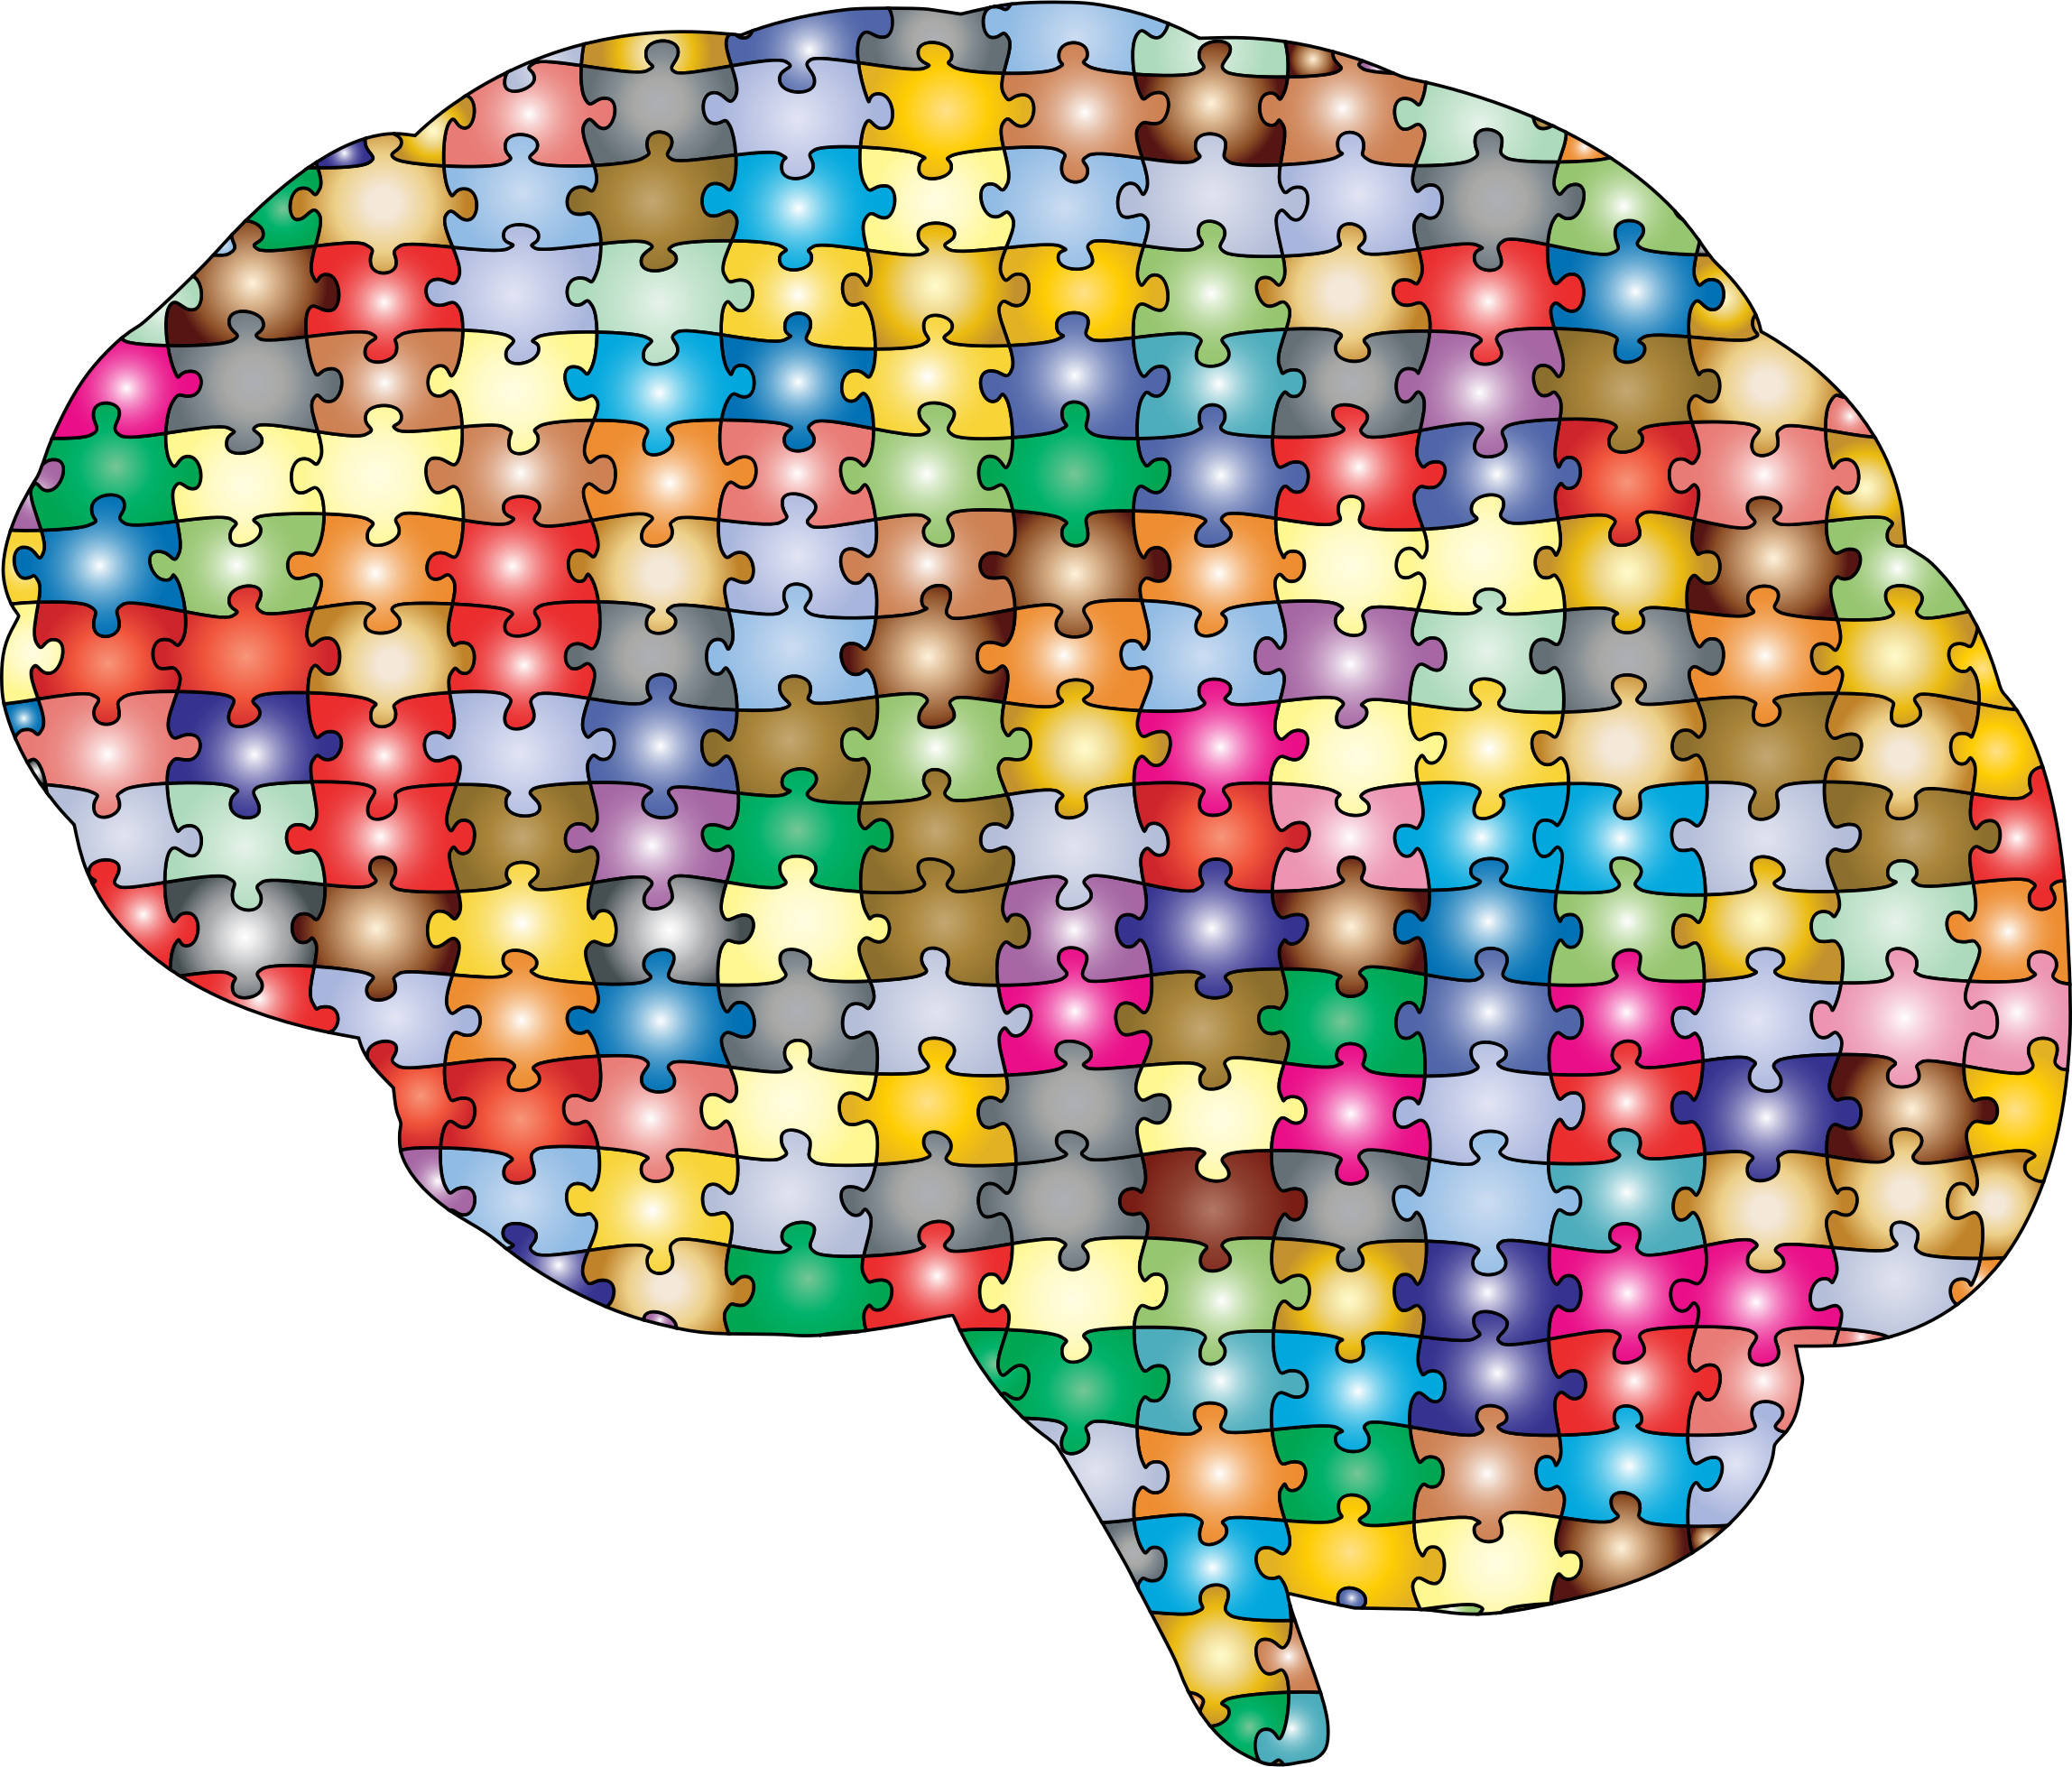 Psychology clipart puzzle head. Brain jigsaw prismatic with